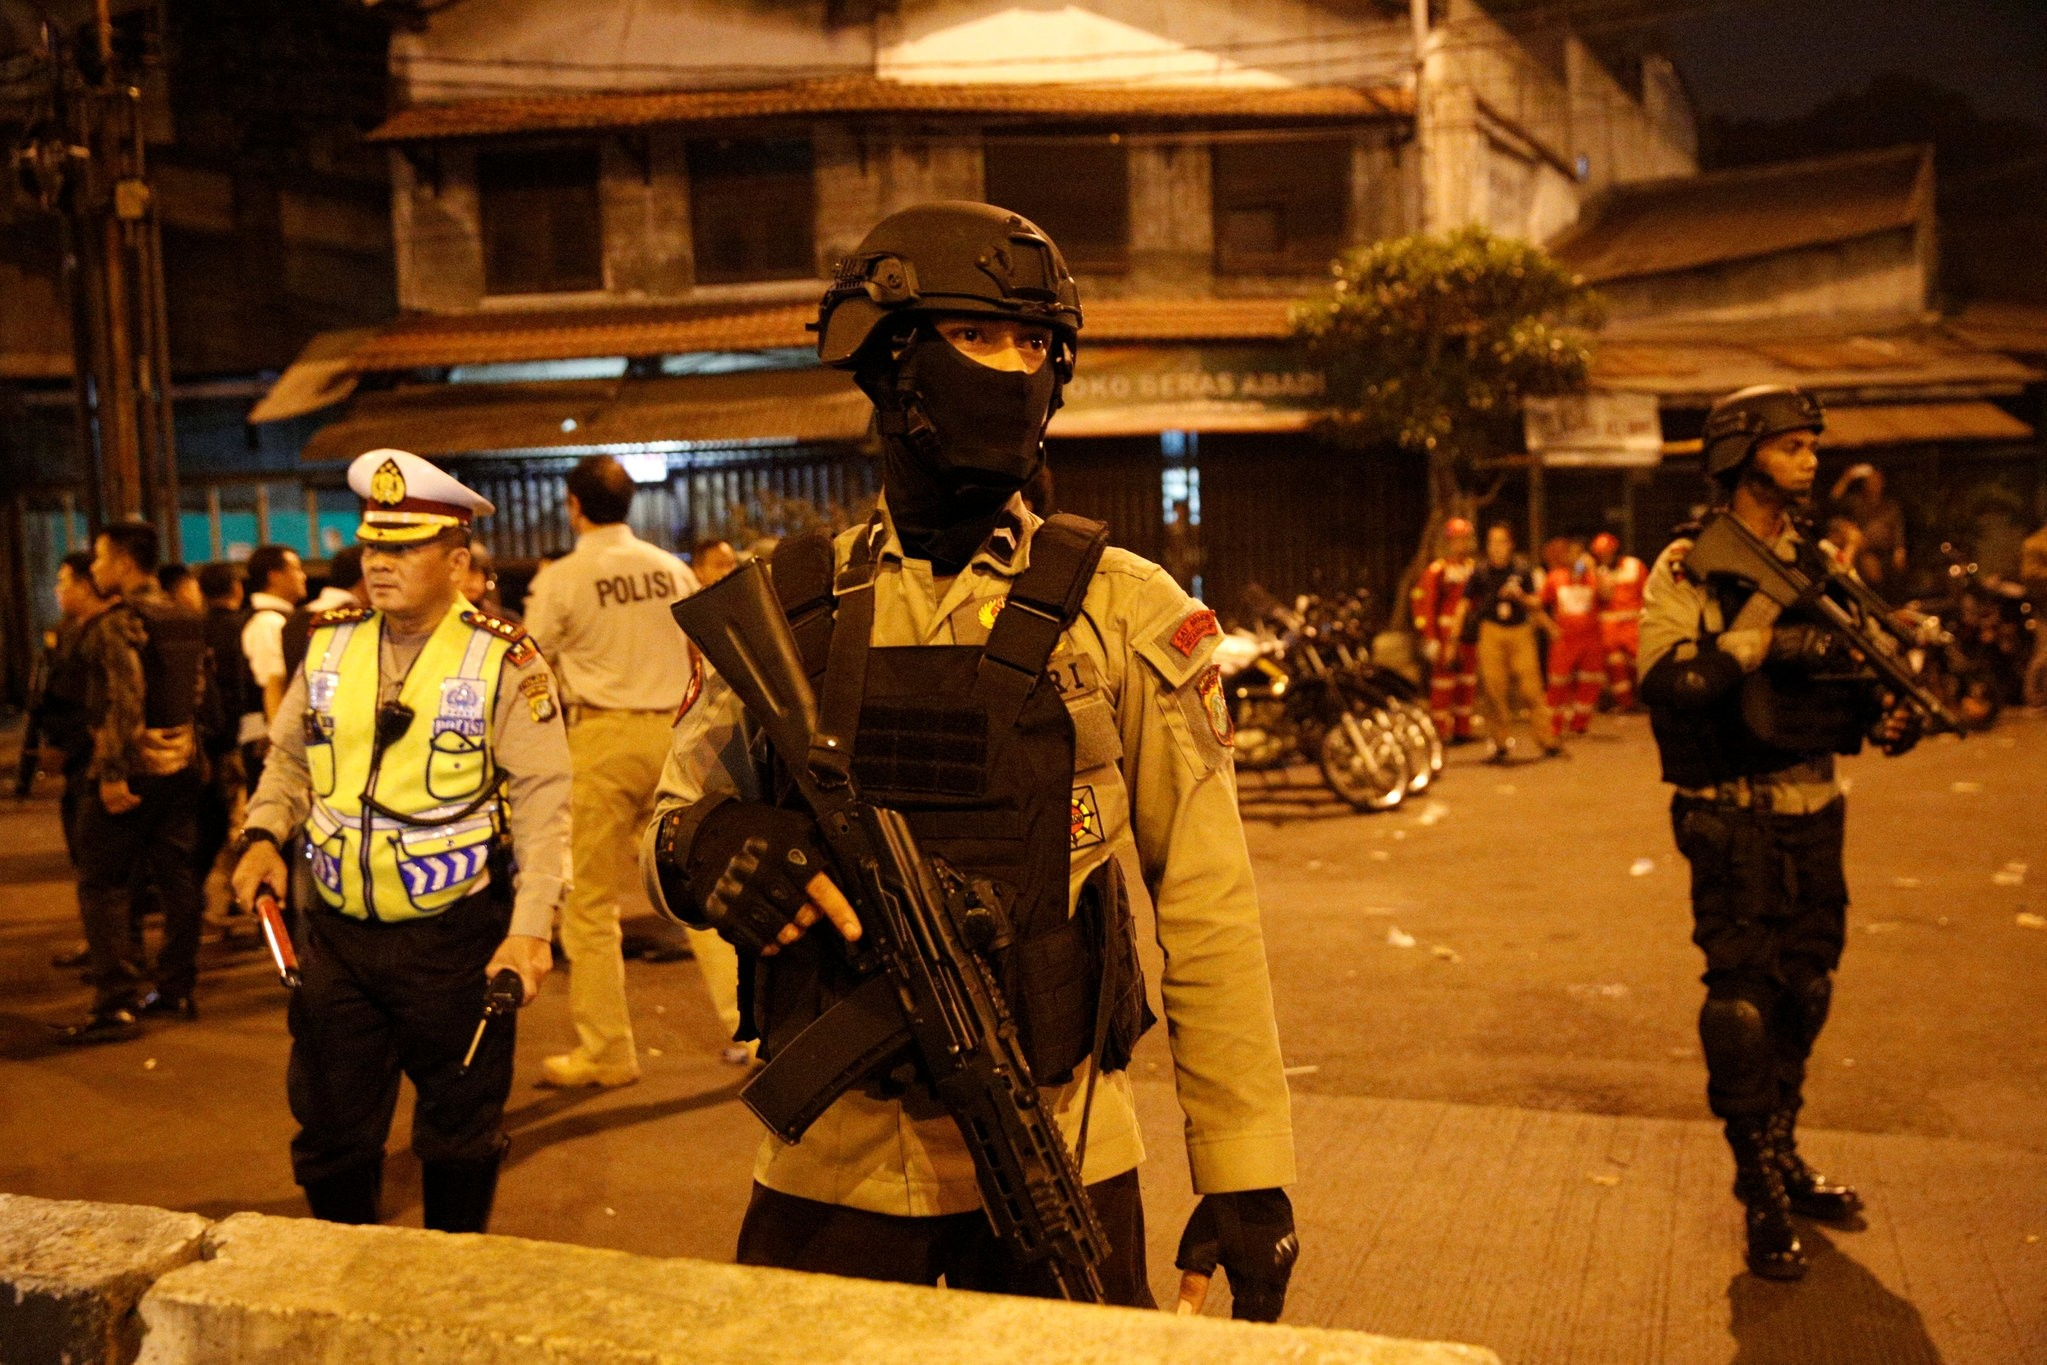 Police guard at scene of an explosion in Jakarta, Indonesia May 24, 2017. (REUTERS Photo)